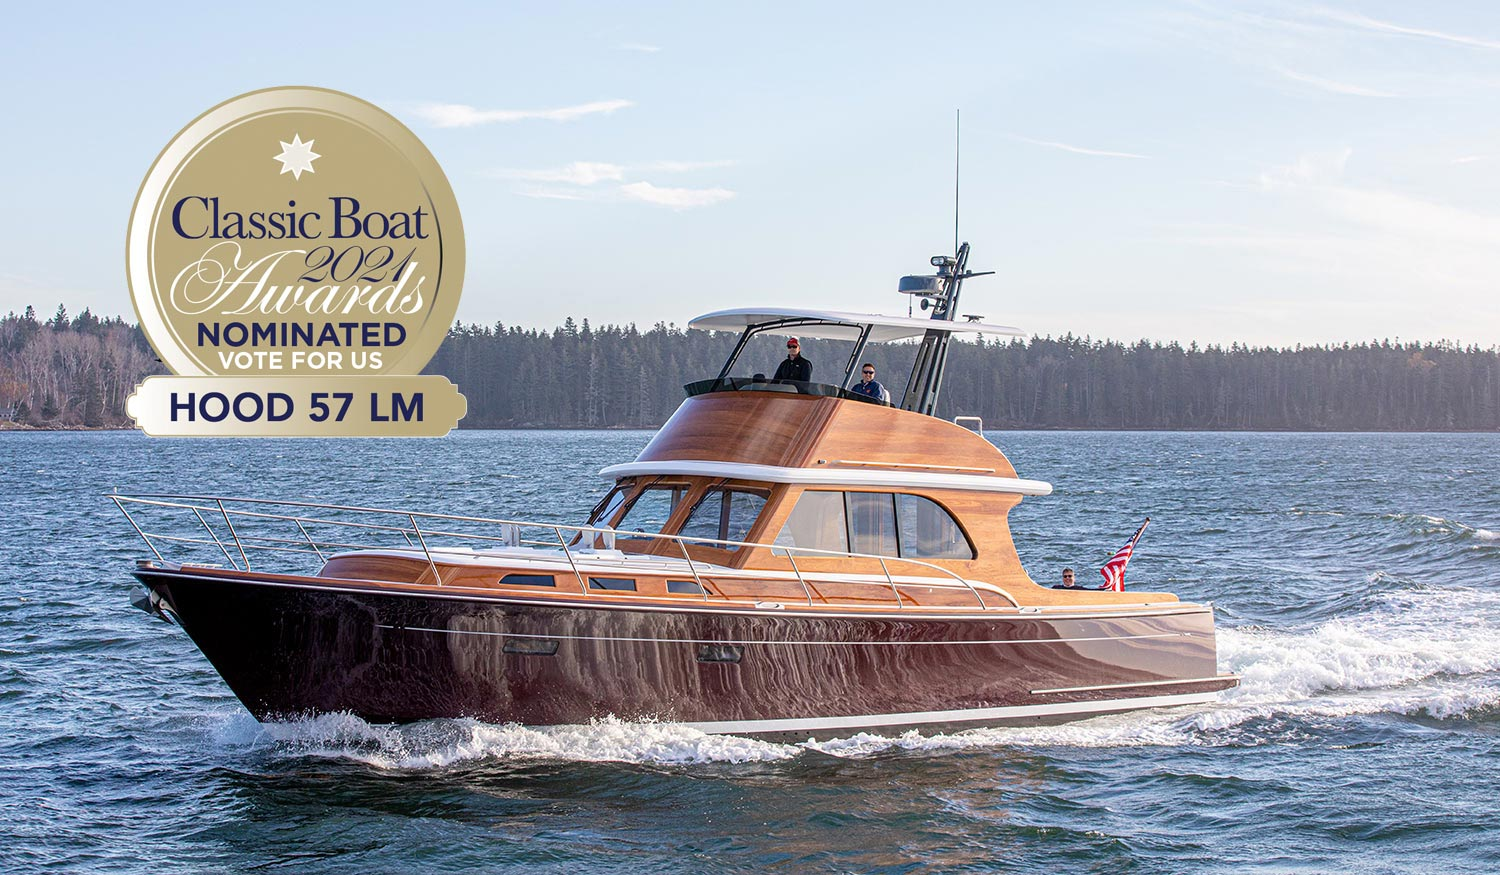 Hood 57 LM, nominated by Classic Boat as best new powered vessel